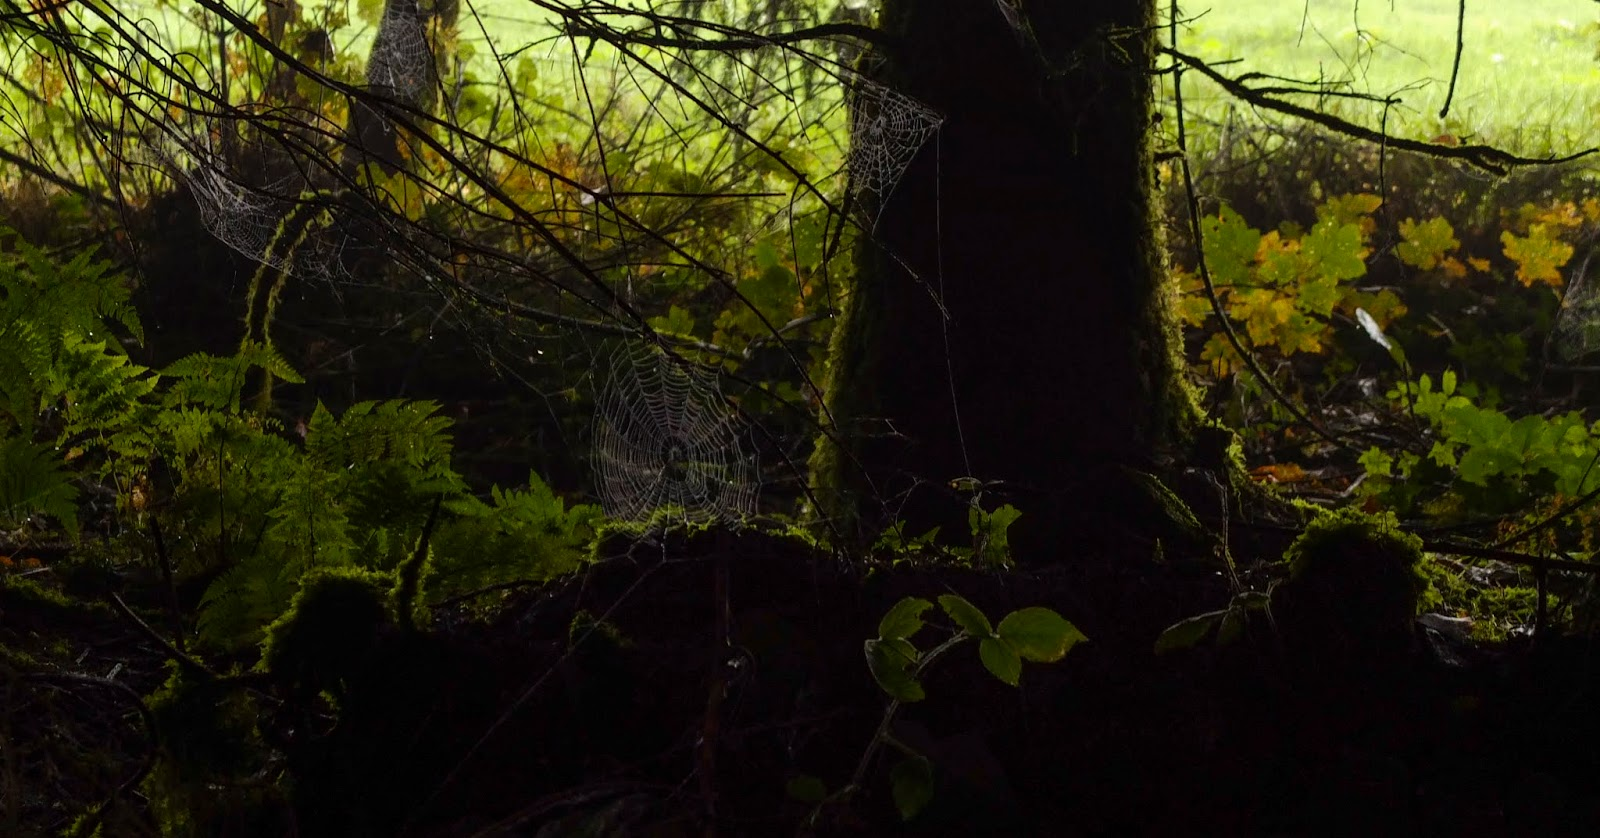 Spider webs hidden in the shadow at the edge of a forest glowing in the light.